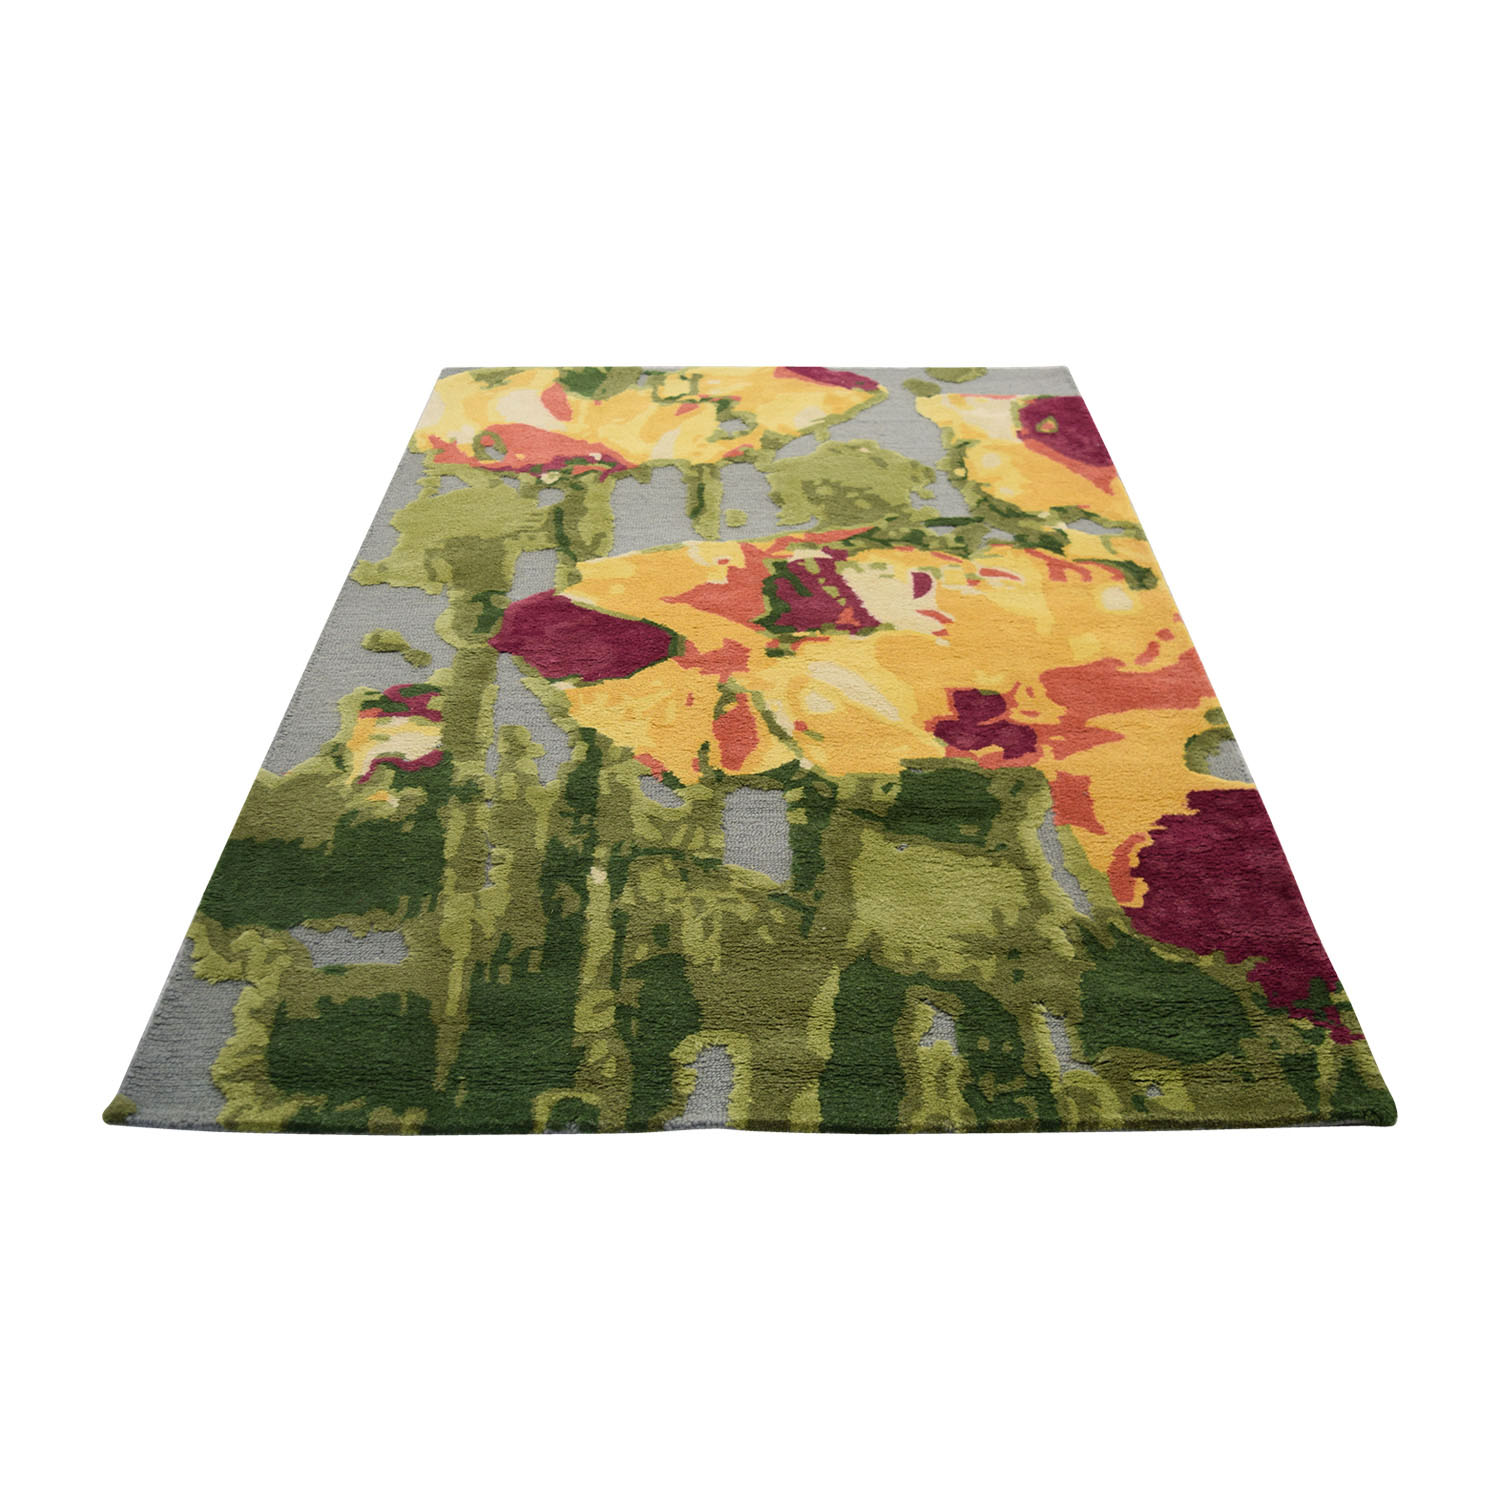 Obeetee Obeetee 5 X 8 Orange Green Pink Yellow and Grey Wool Rug with High and Low Pile price